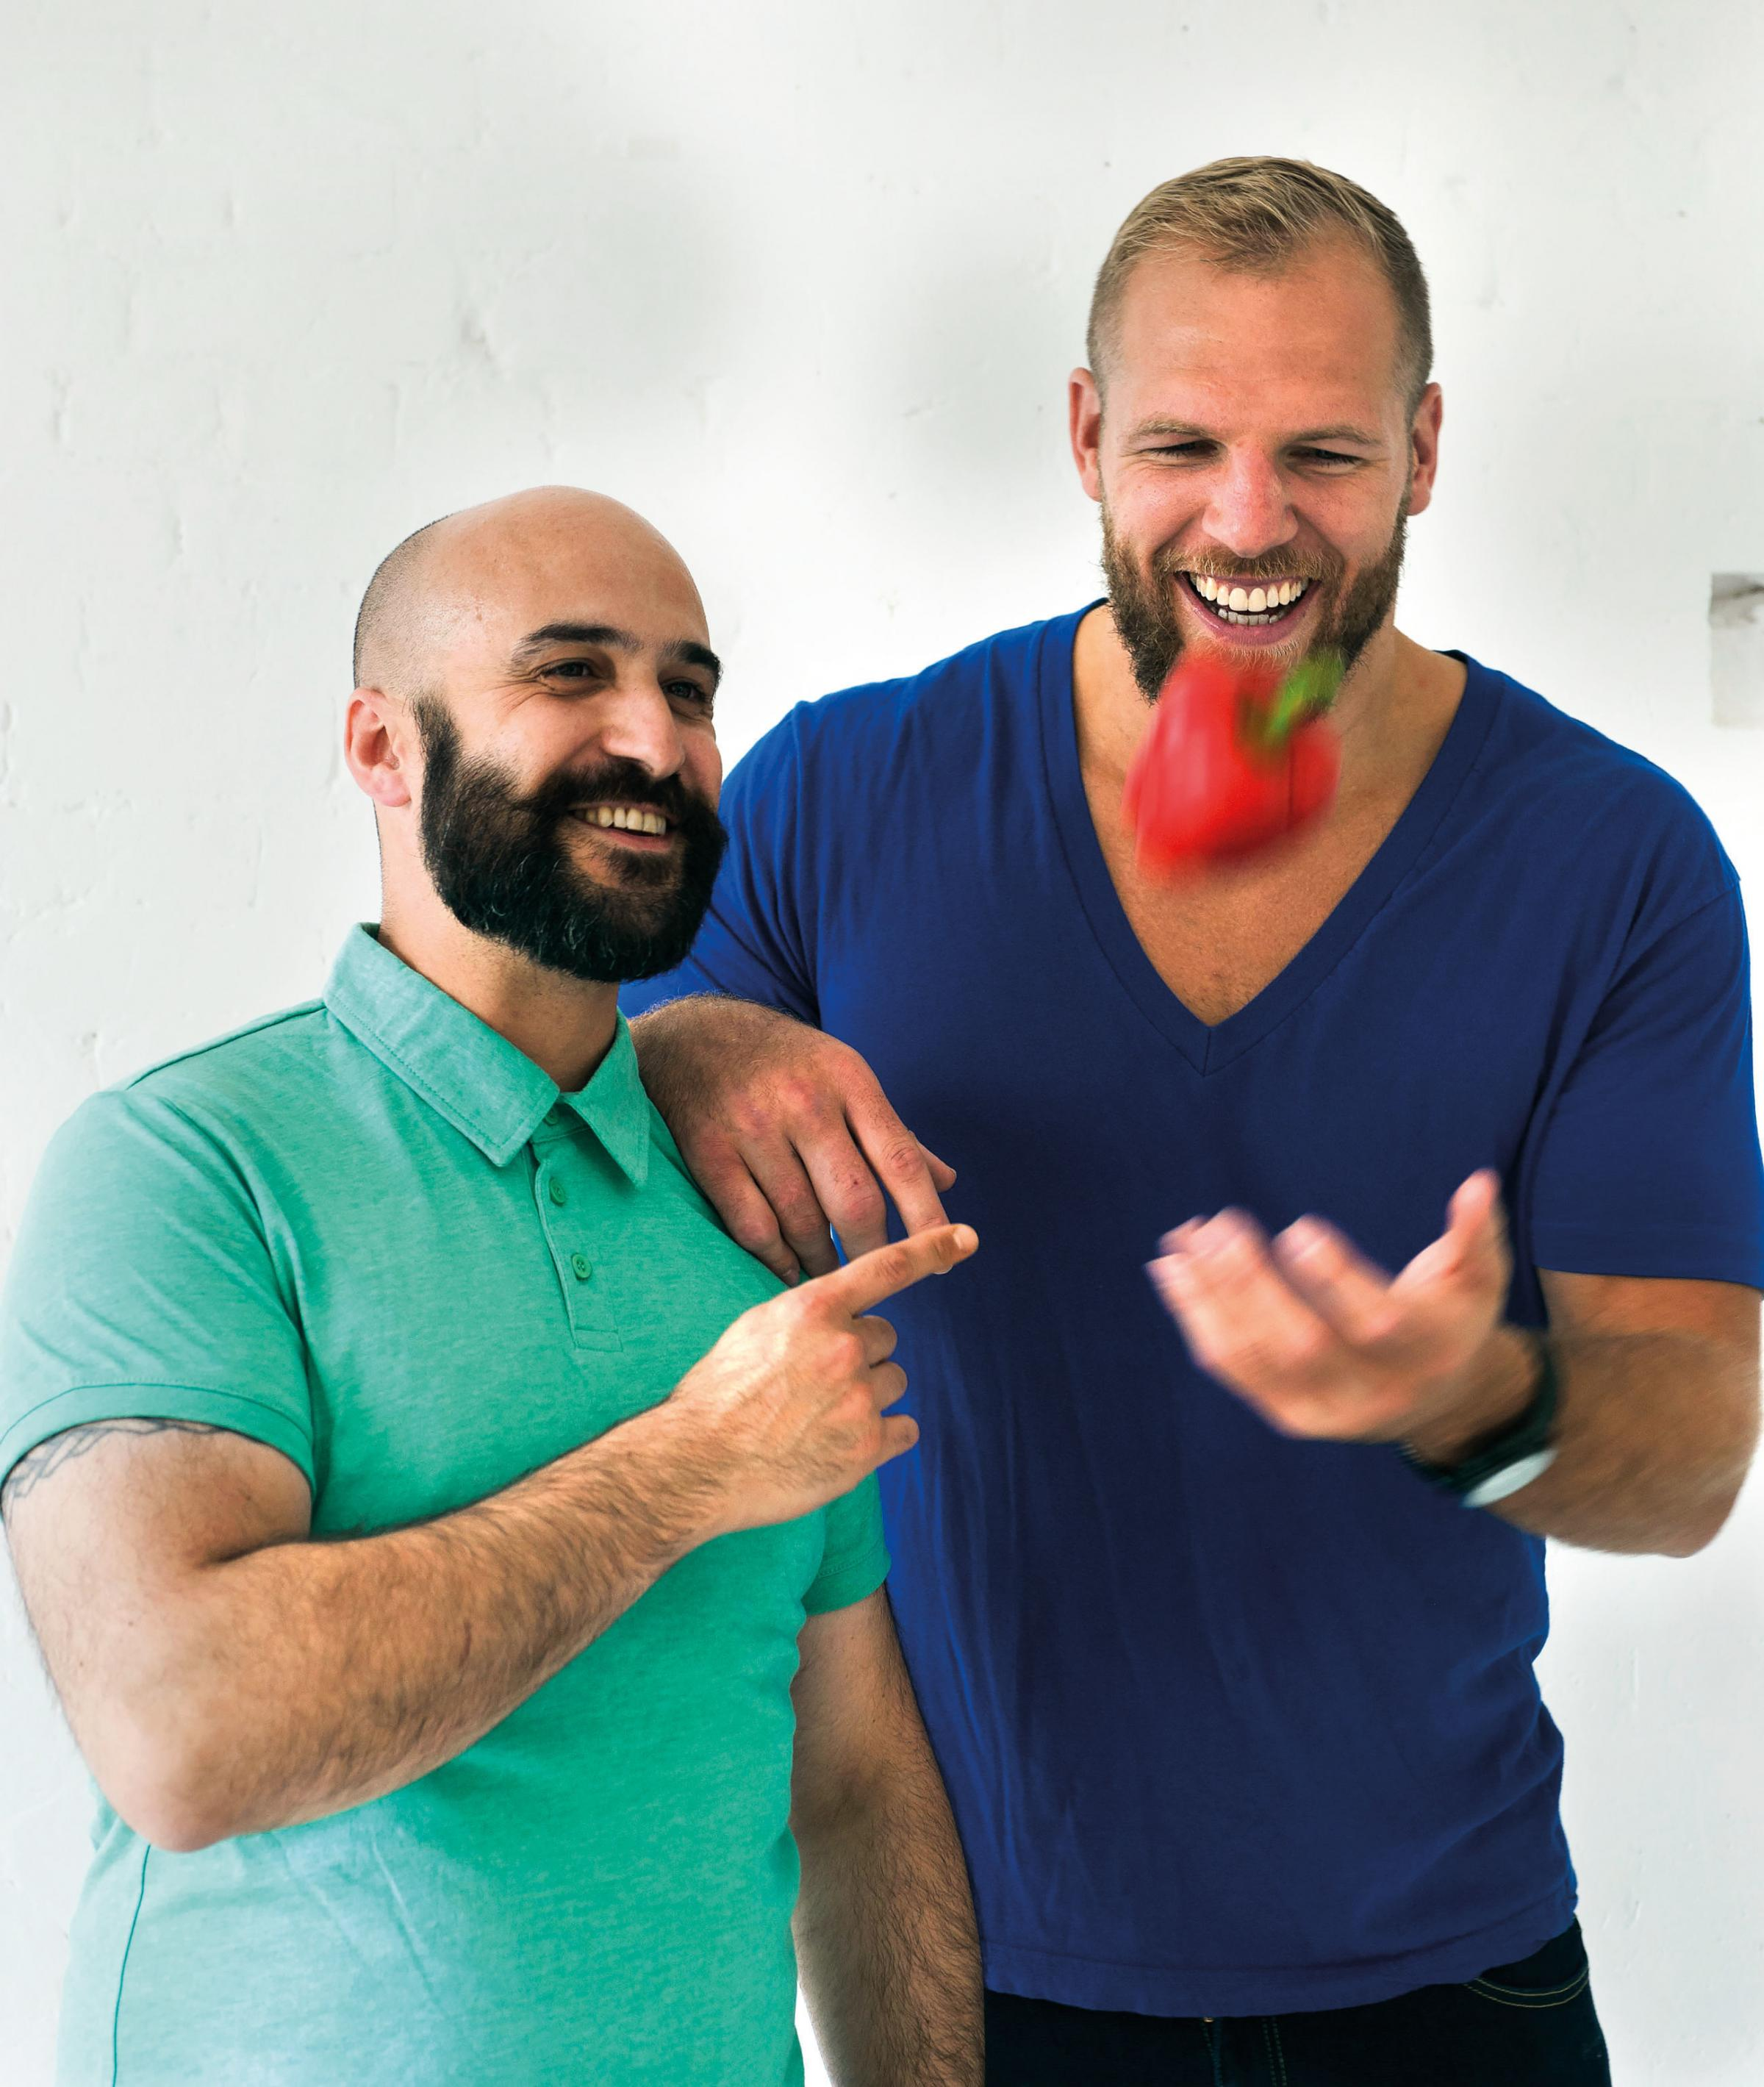 Undated Handout Photo of James Haskell and Omar Meziane. See PA Feature FOOD James Haskell. Picture credit should read: Neil Cooper/PA. WARNING: This picture must only be used to accompany PA Feature FOOD James Haskell.